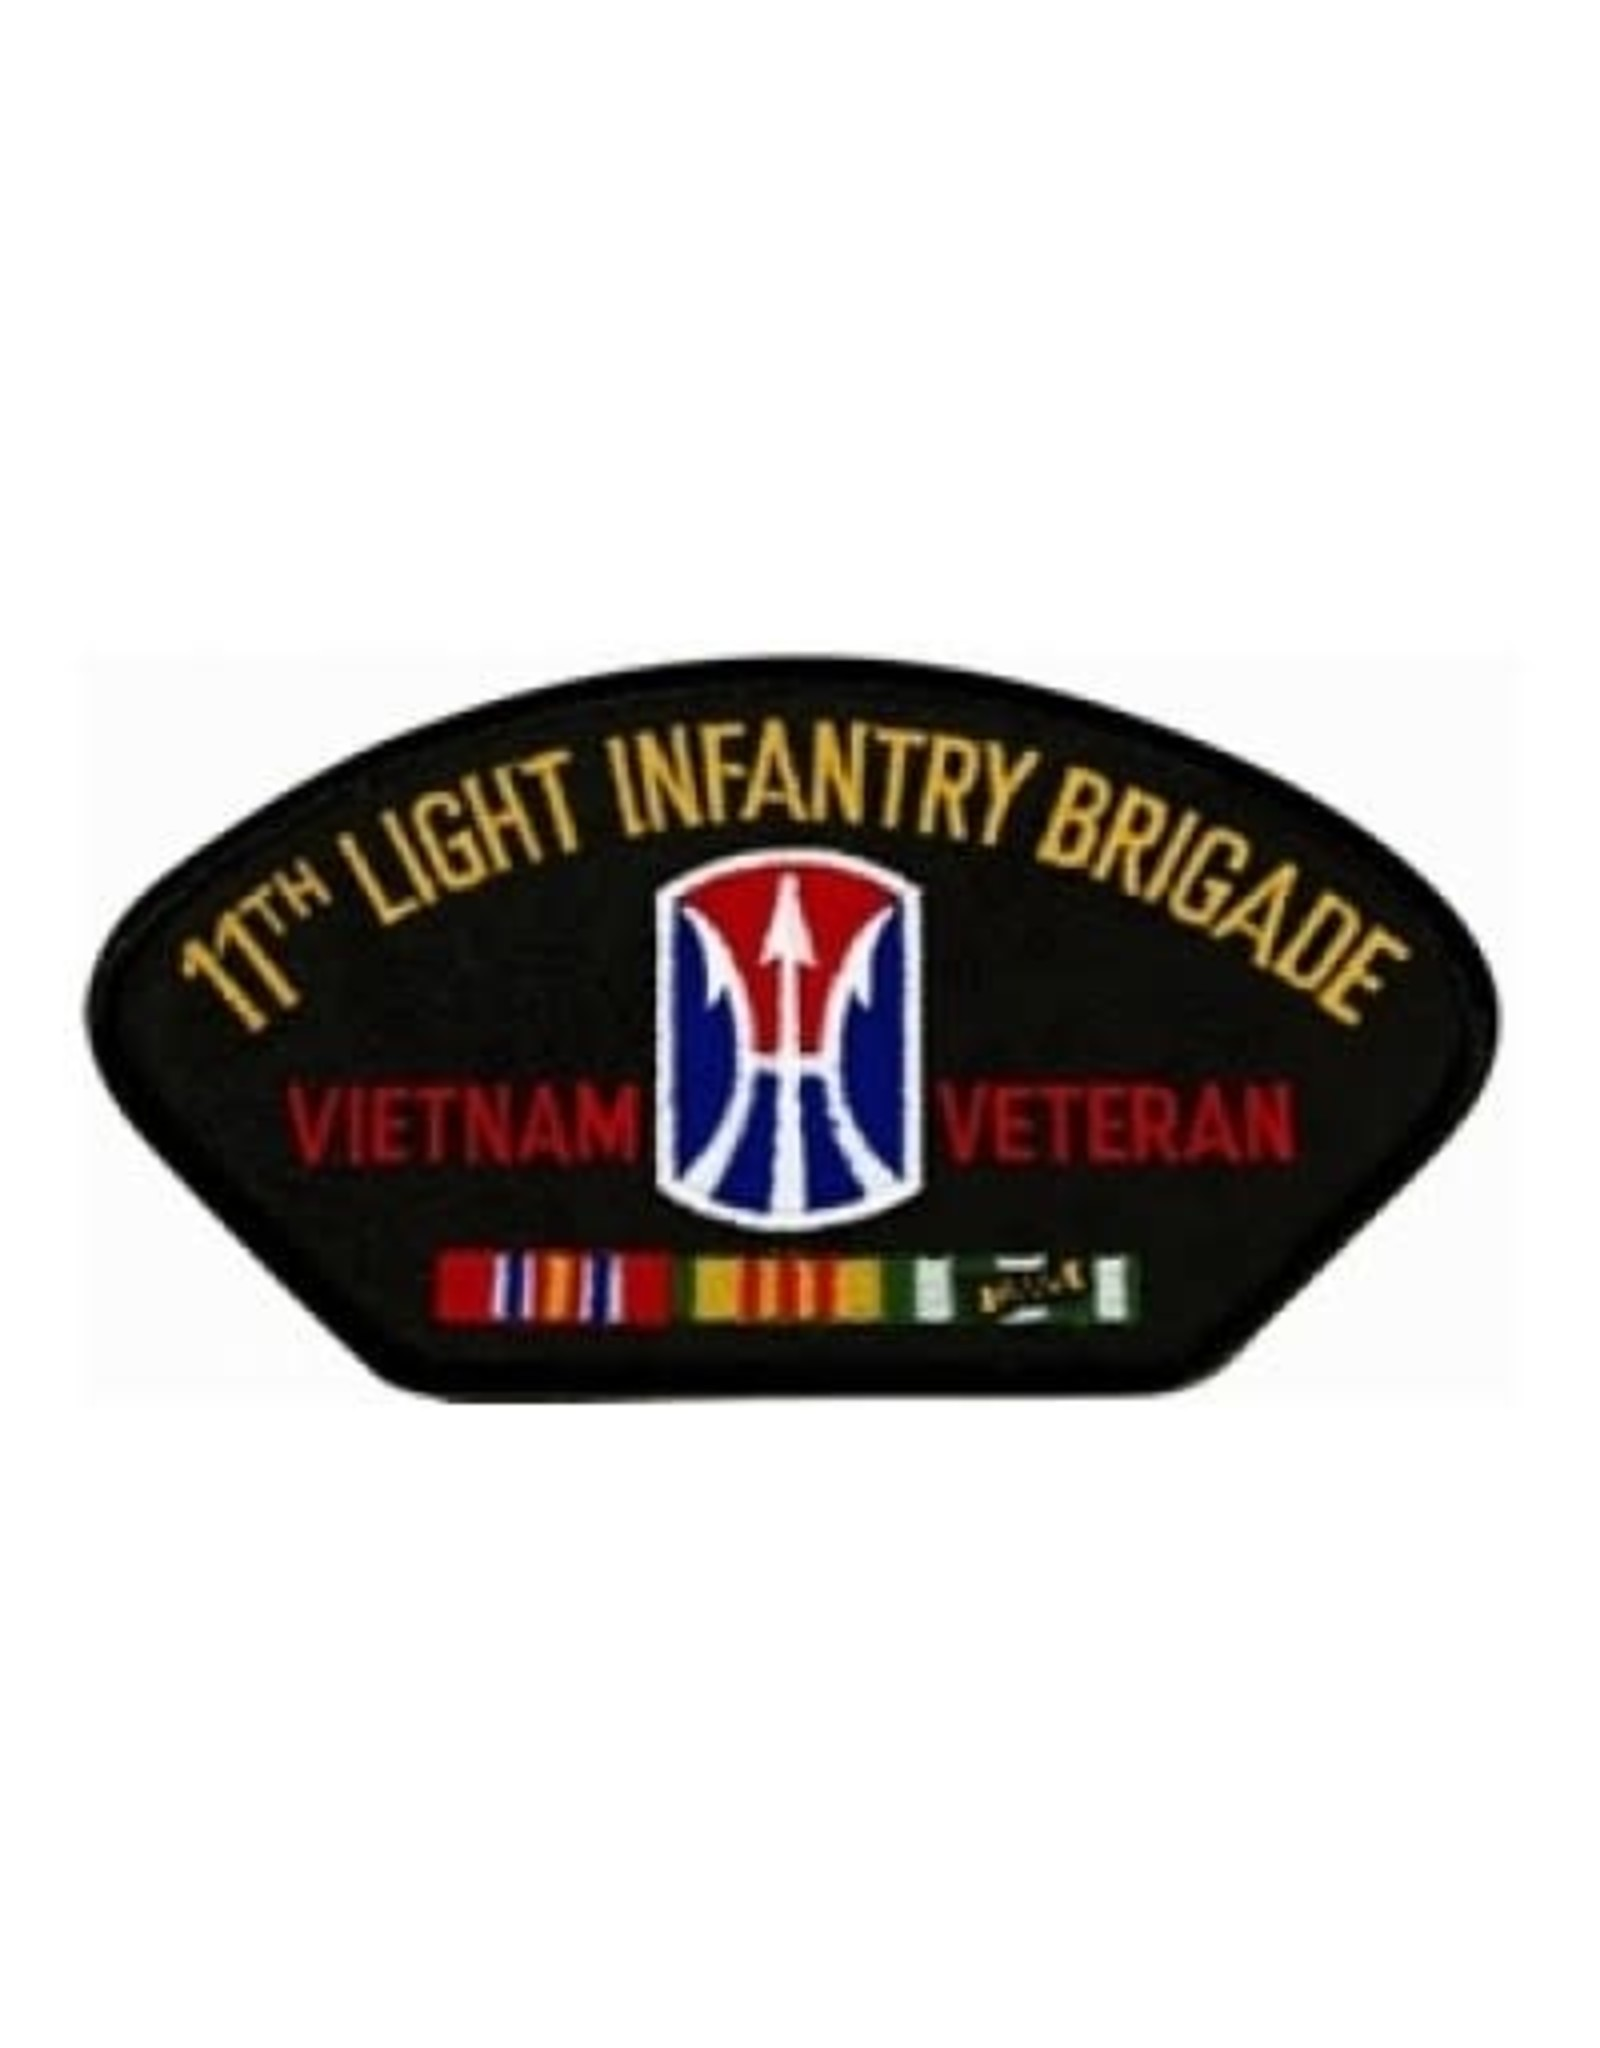 "MidMil Embroidered 11th Light Infantry Brigade Vietnam Veteran Patch with Emblem and Ribbons 5.2"" wide x 2.7"" high Blackx2.75"""